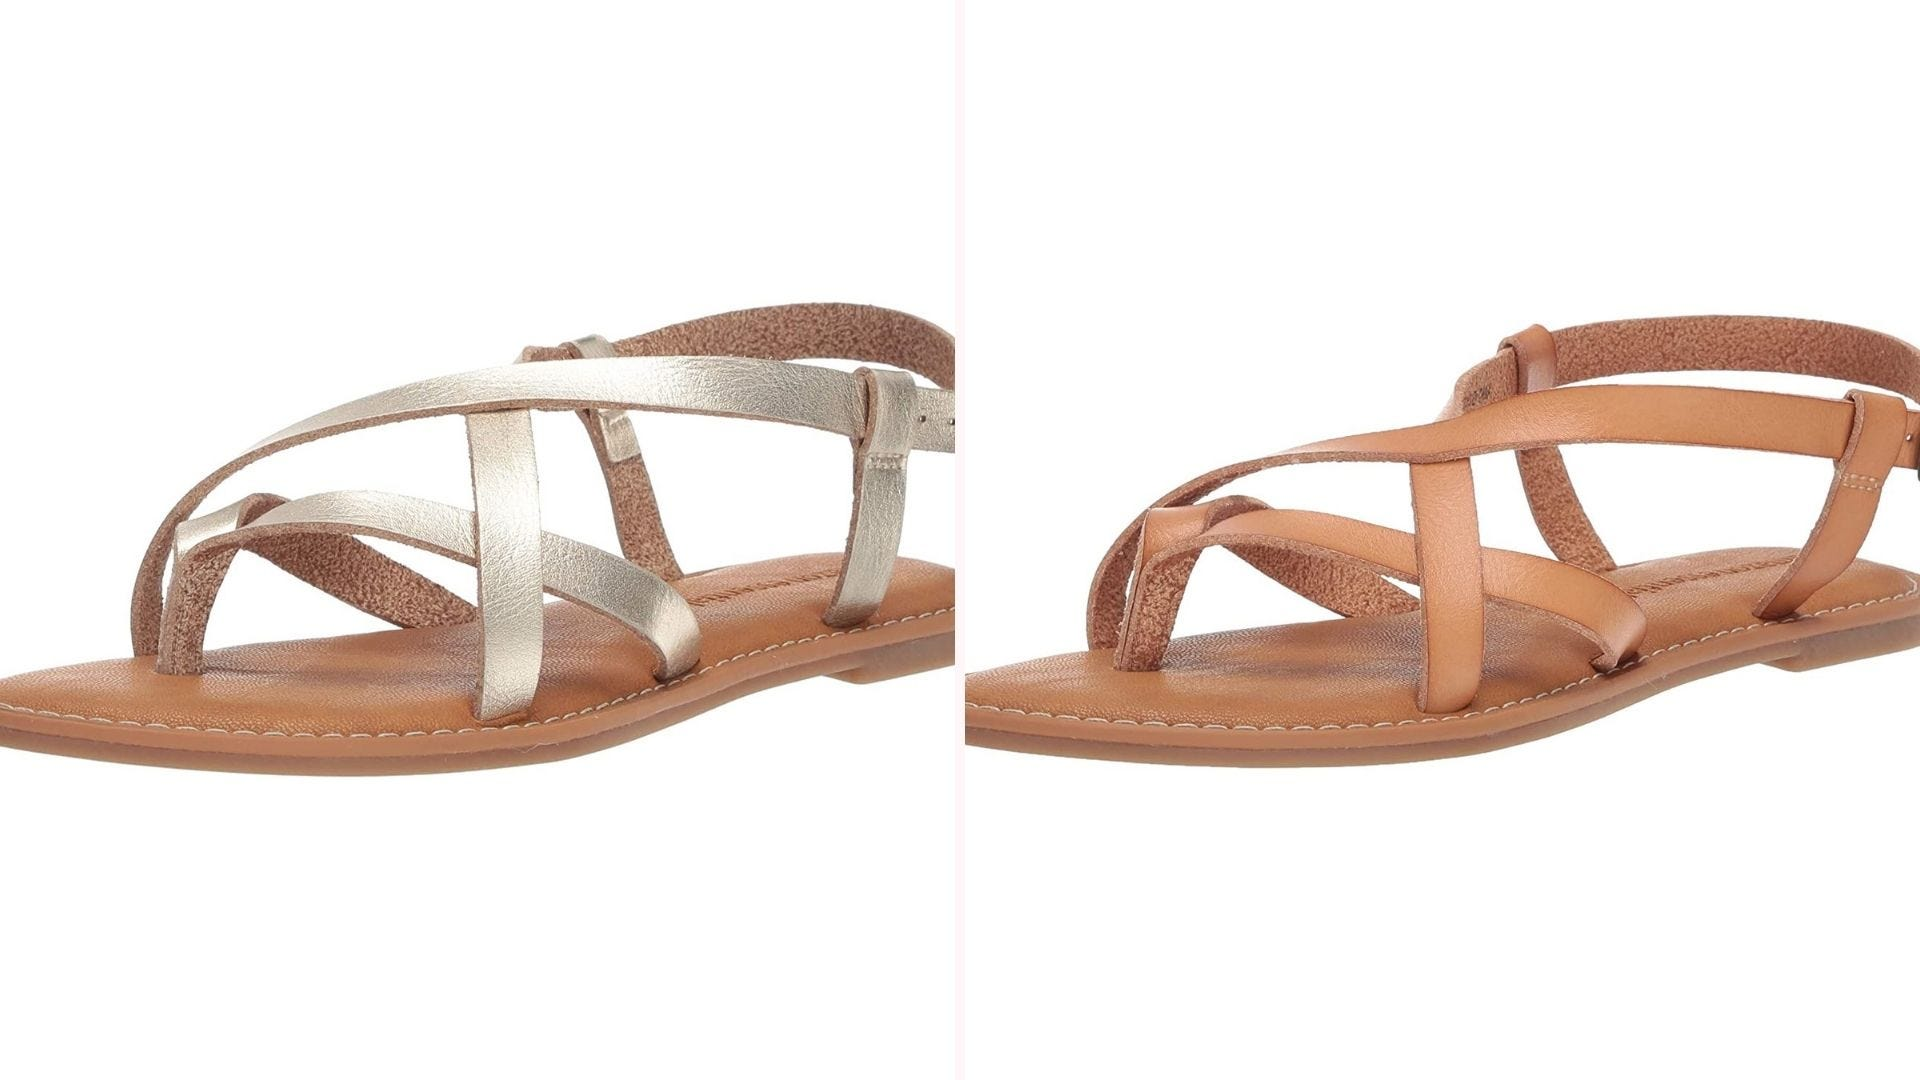 Two strappy flat sandals, one with gold metallic straps, one with tan straps